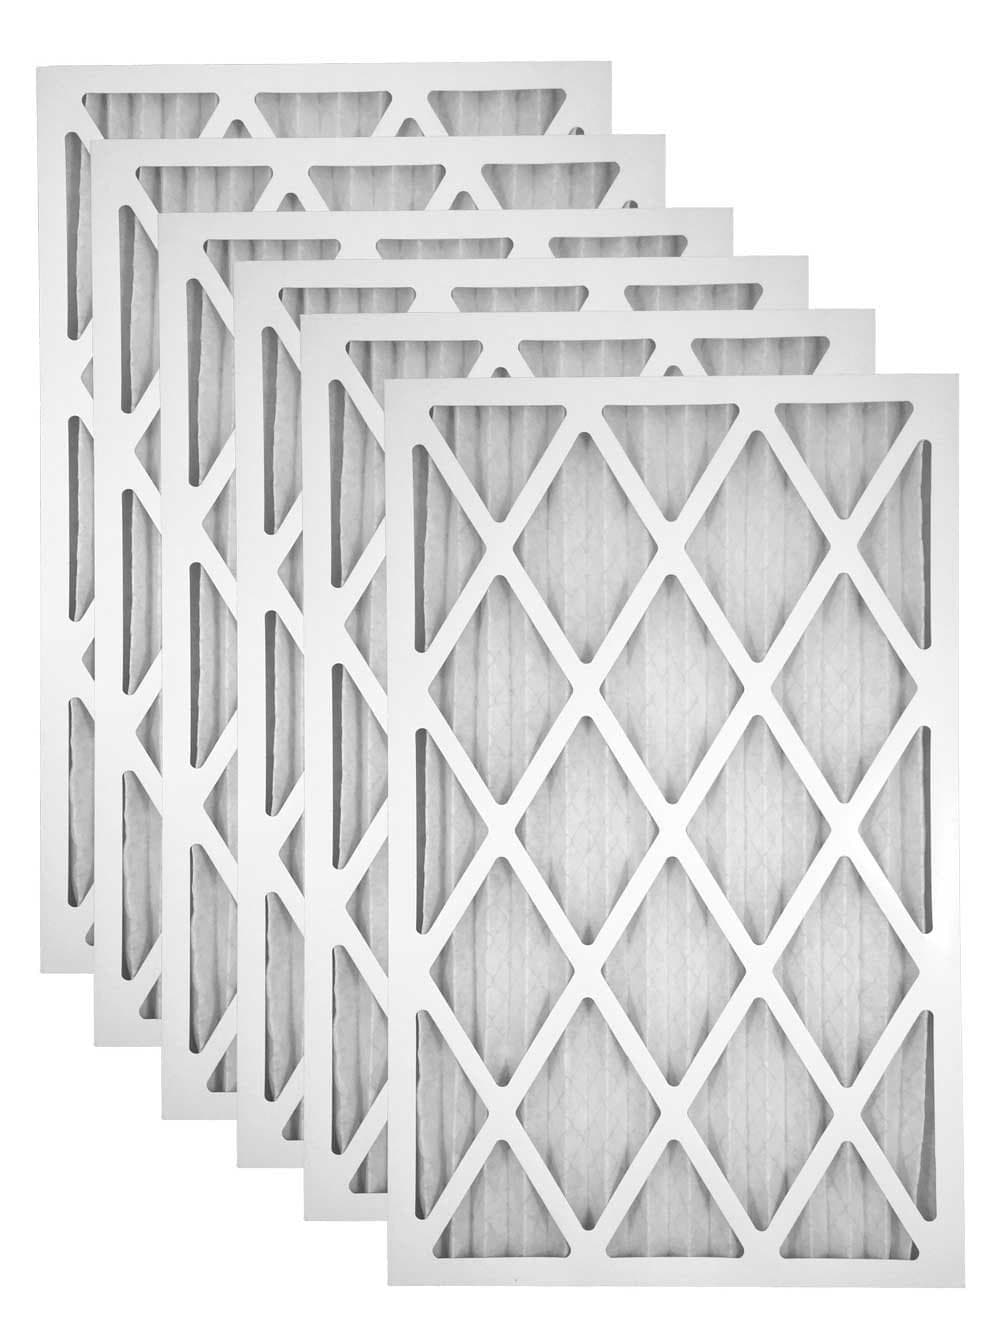 30x30x1 Merv 11 Pleated Geothermal Furnace Filter - Case of 6 by Atomic Filters